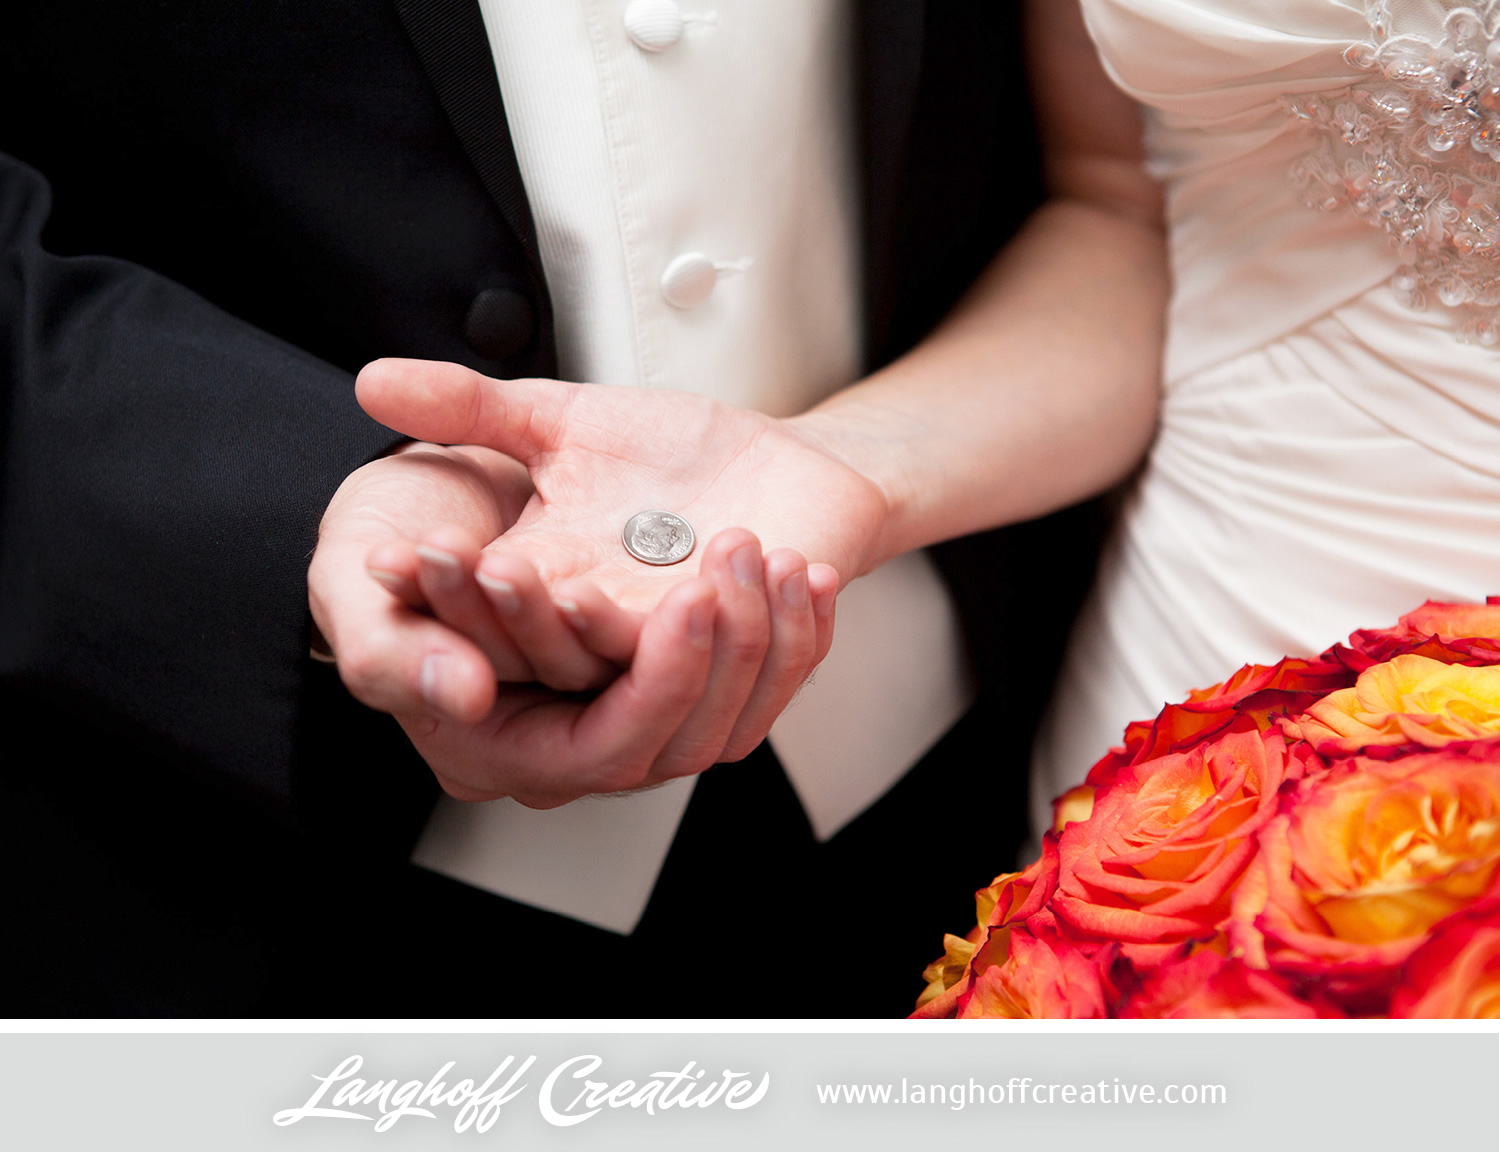 PlainfieldWedding-2013-LanghoffCreative-MattErin-14-photo.jpg